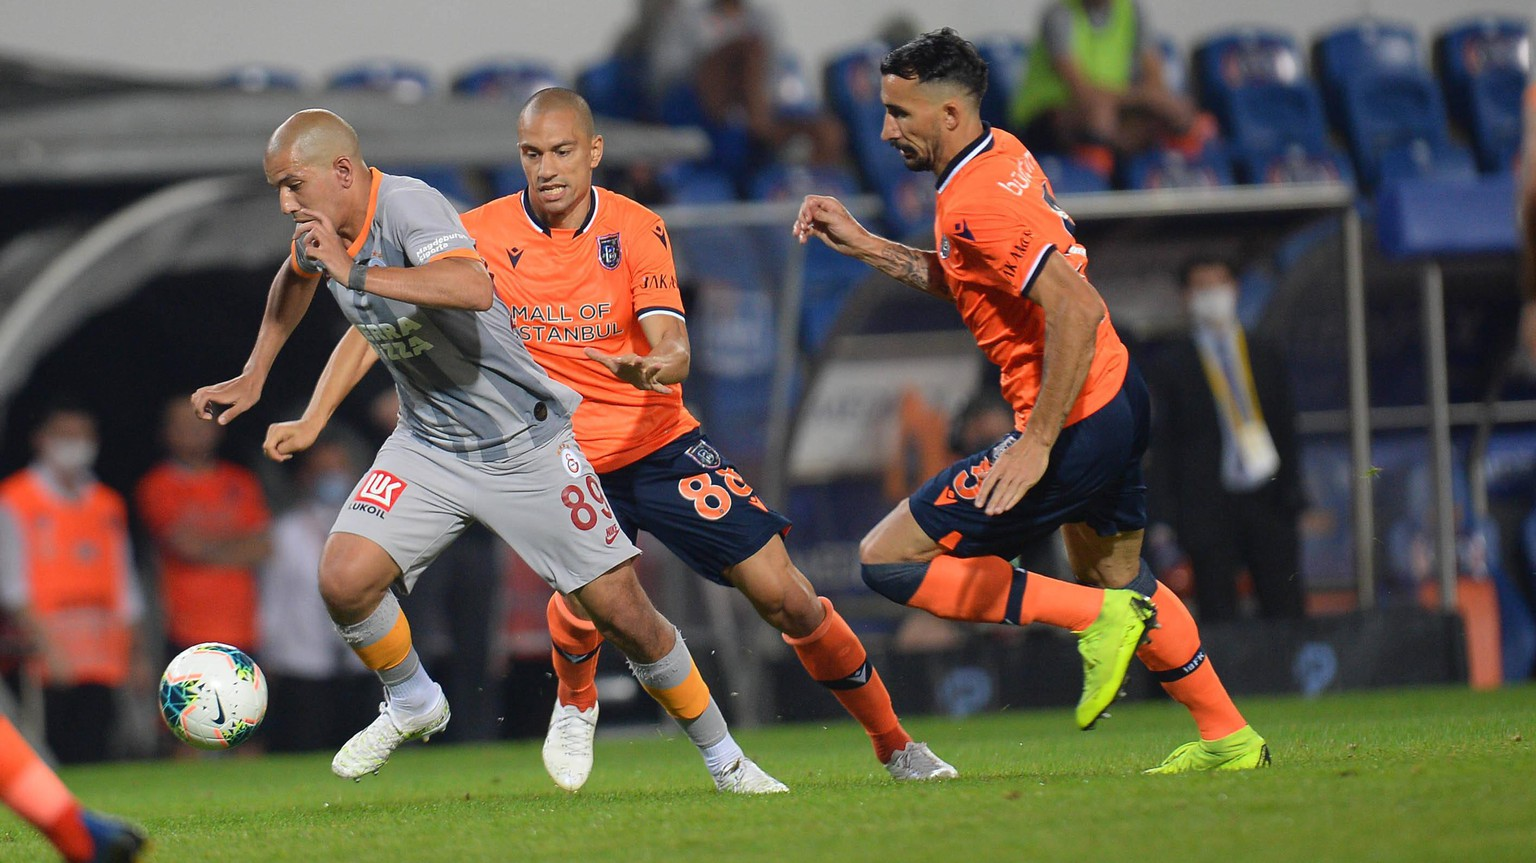 Sofiane Feghouli of Galatasaray and Gokhan Inler C , Mehmet Topal R of Basaksehir FK during the Turkish Super league football match between Basaksehir FK and Galatasaray at Basaksehir Fatih Terim Stadium in Istanbul , Turkey on June 28 , 2020. PUBLICATIONxNOTxINxTUR